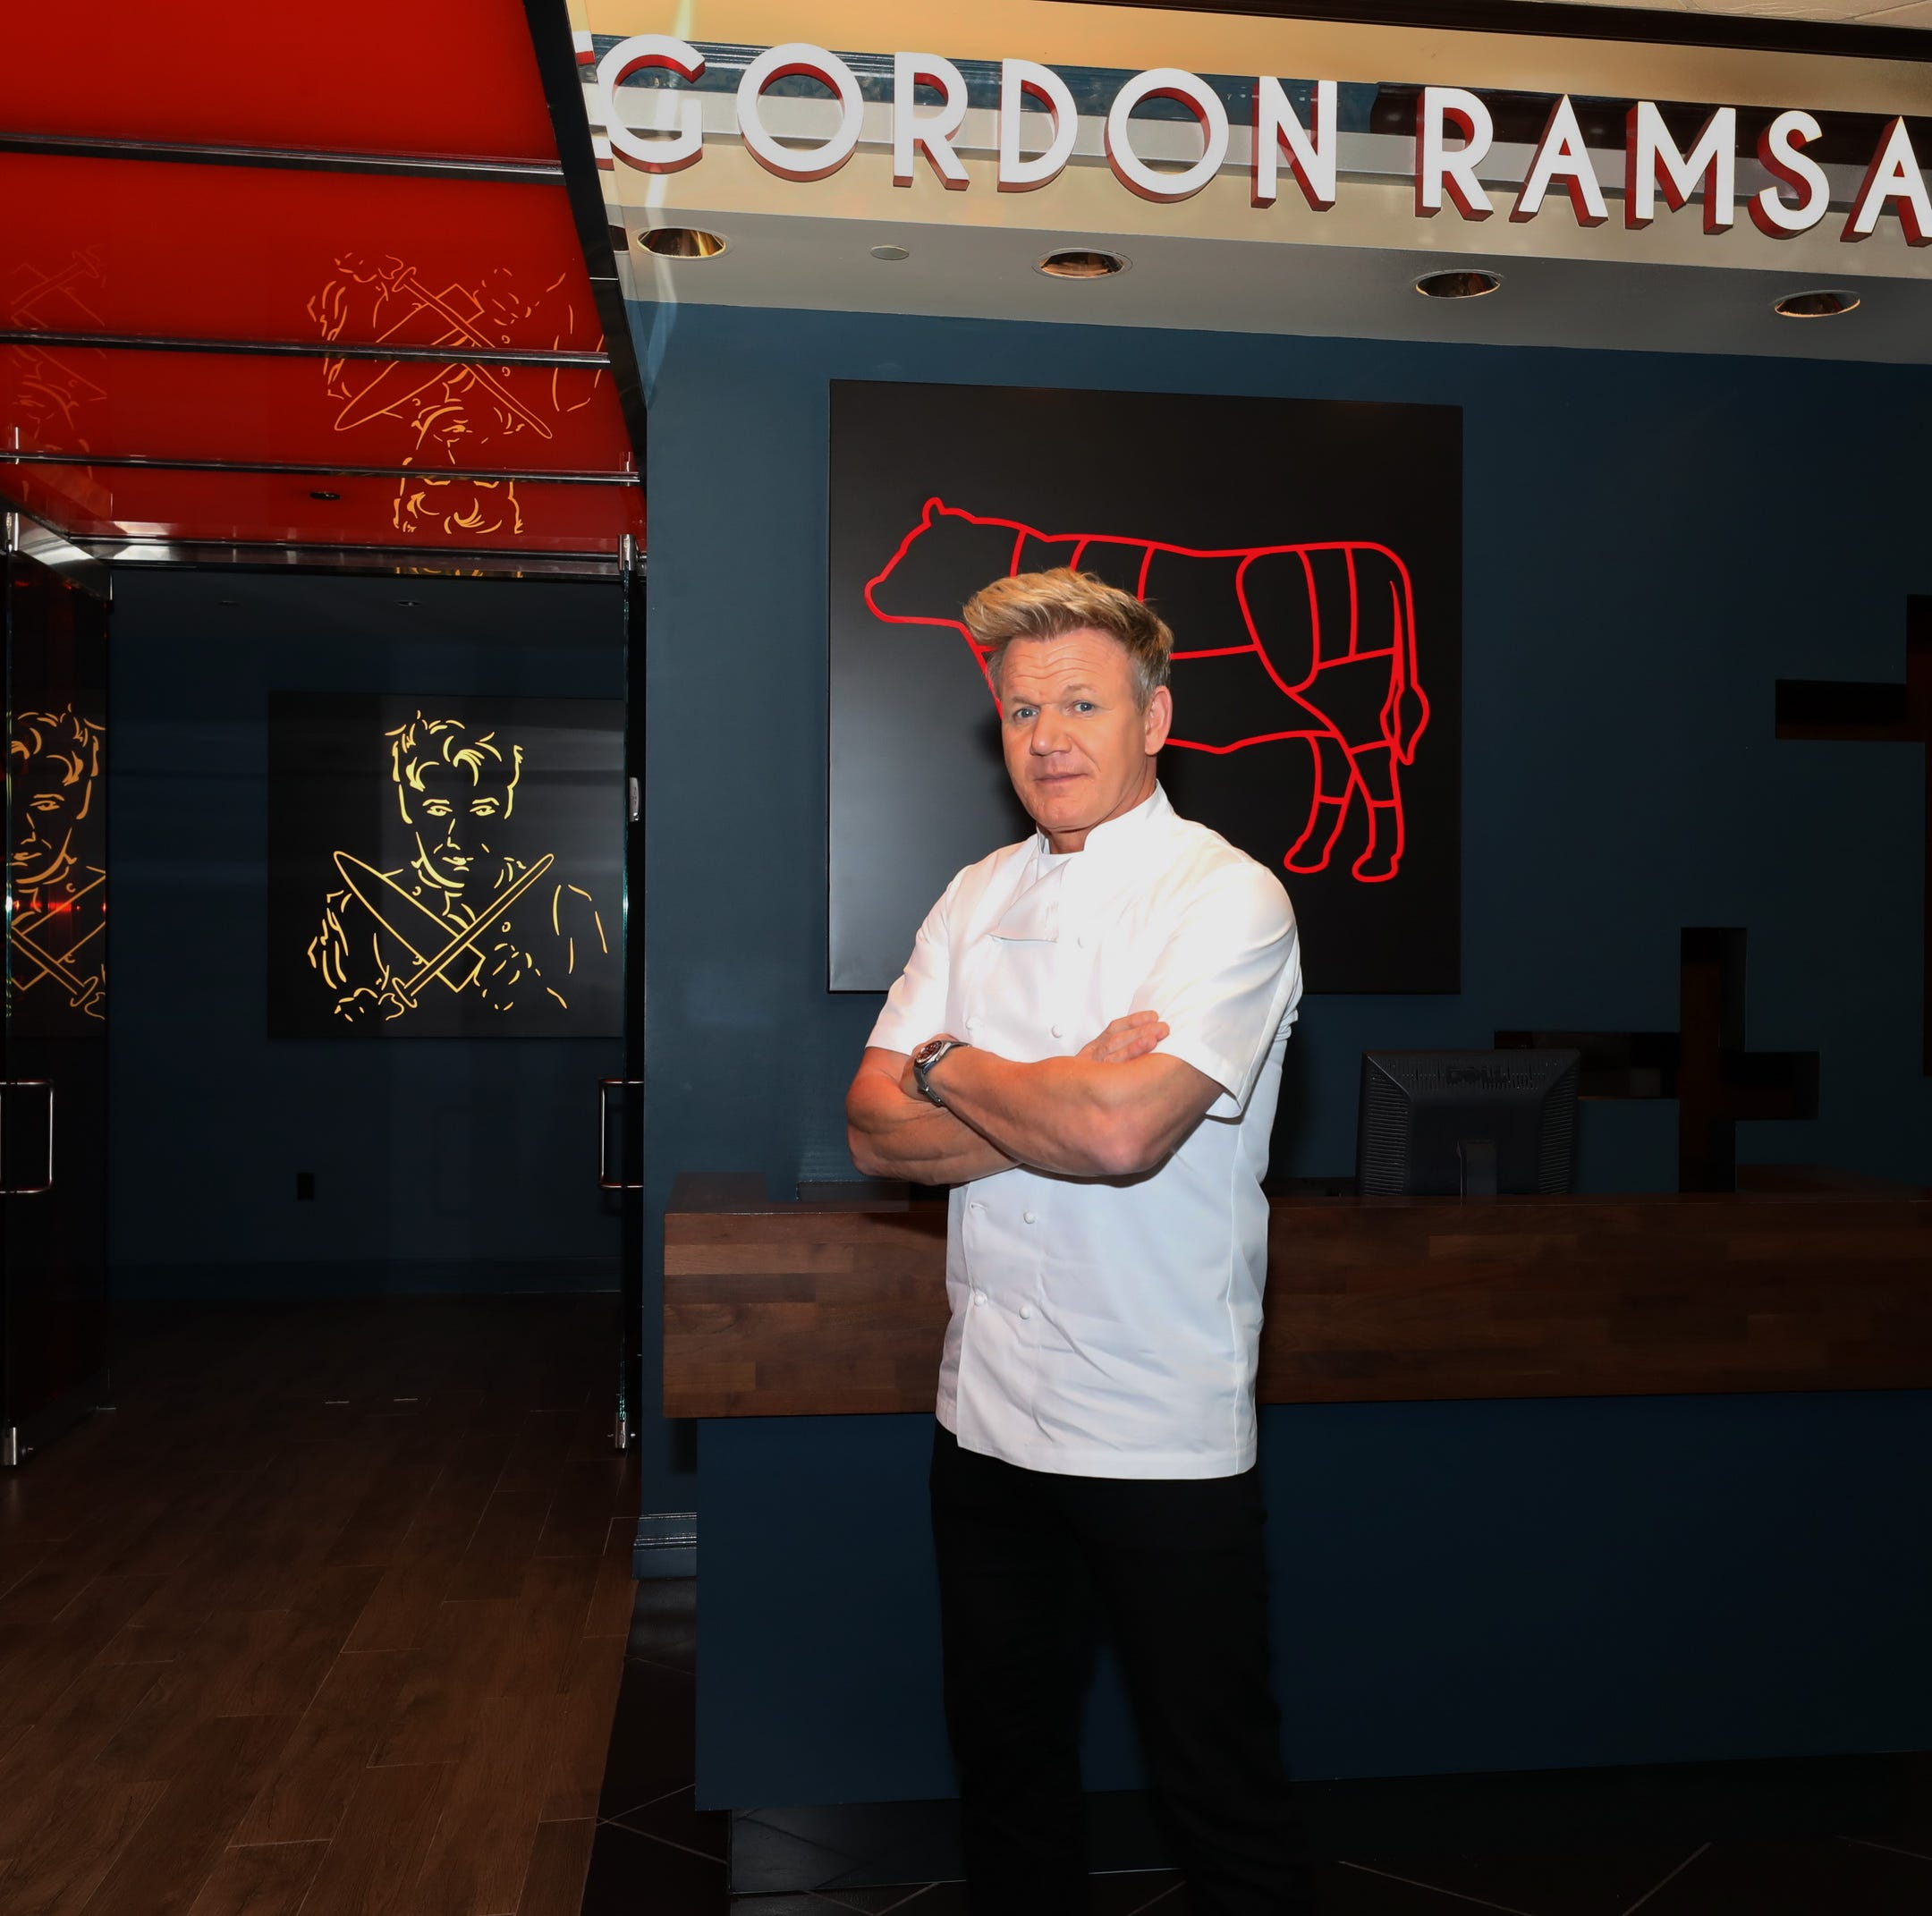 Gordon Ramsay isn't wasting any time dreaming up new A.C. restaurants